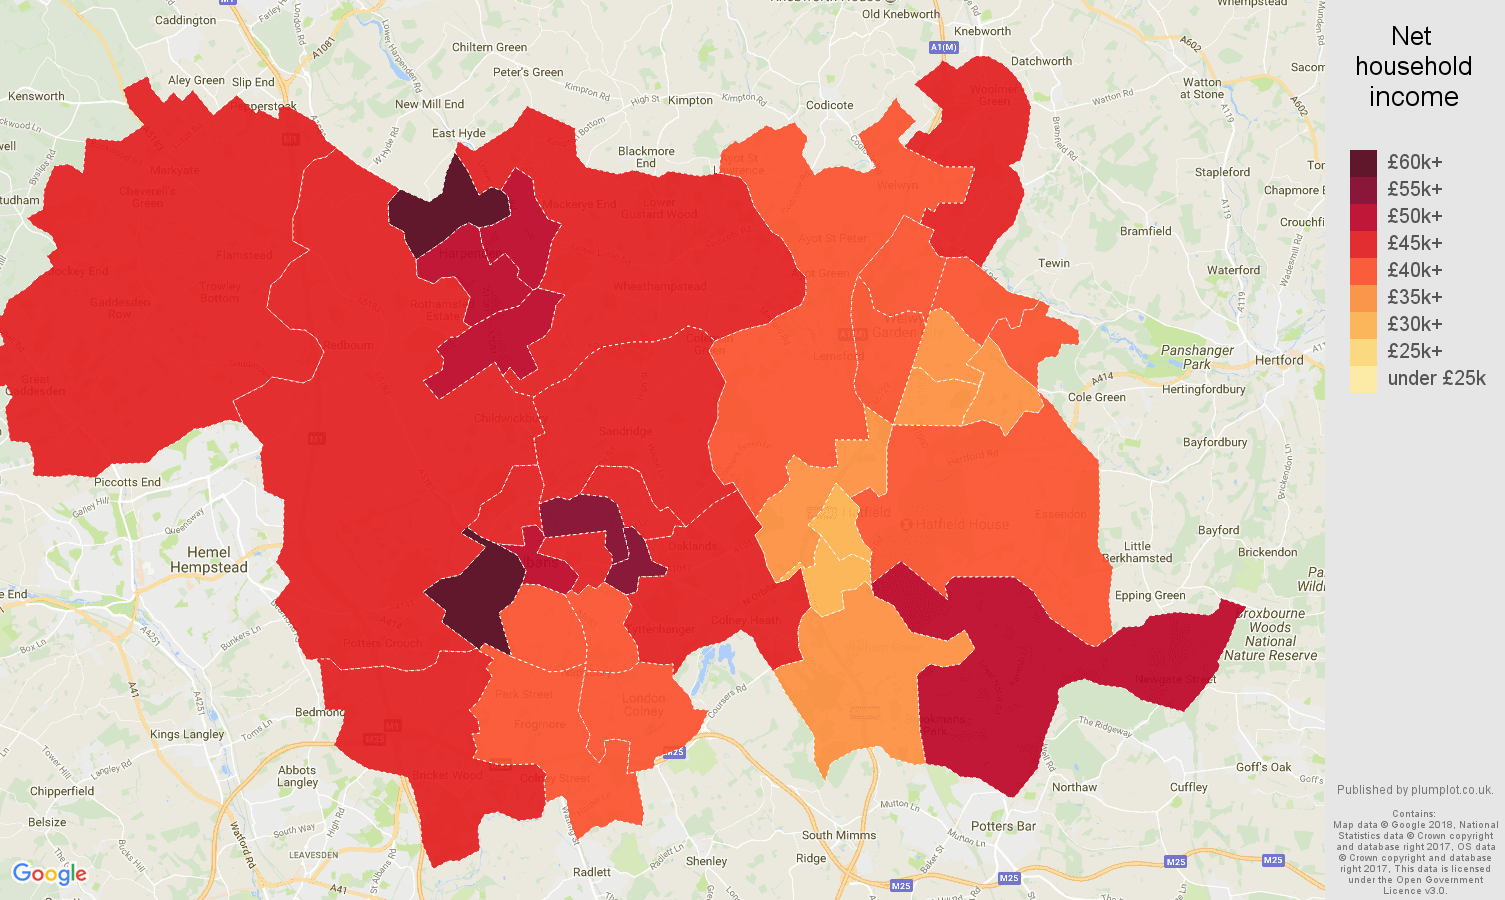 St Albans net household income map